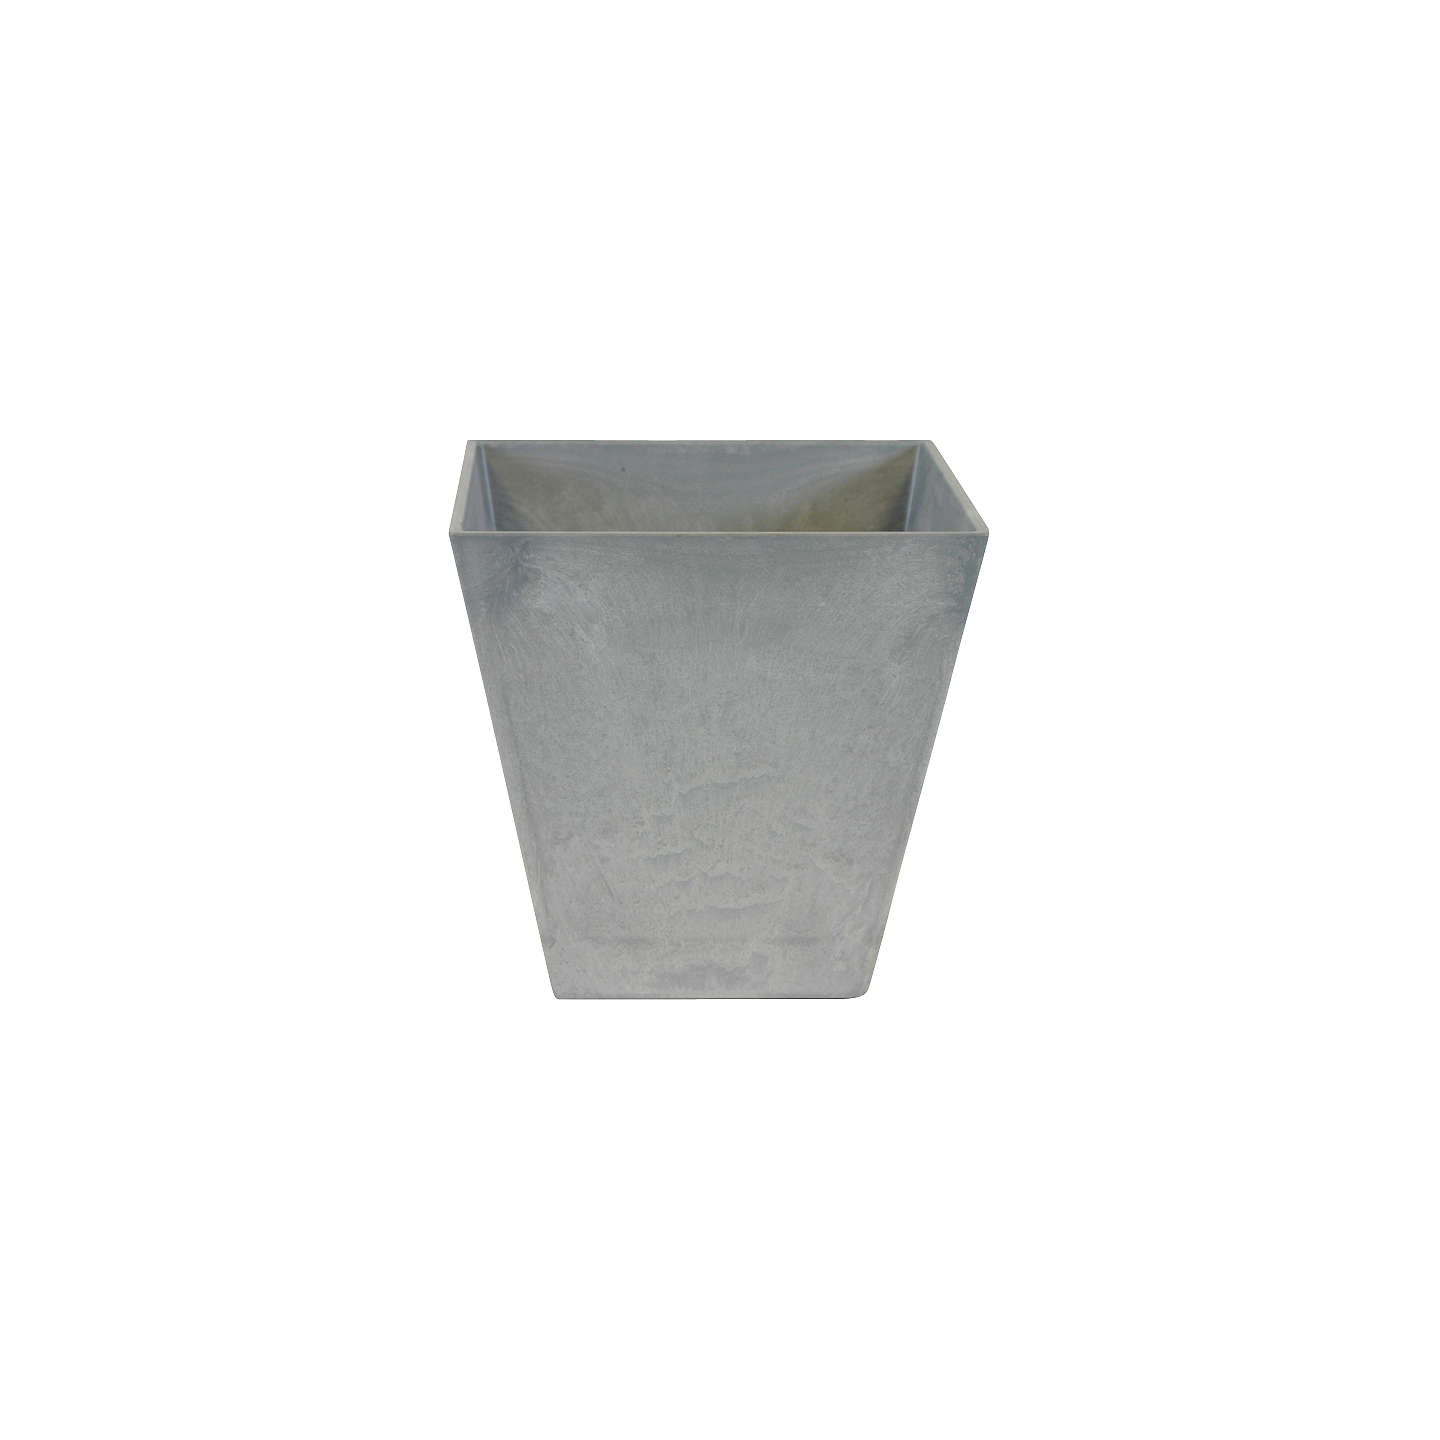 BuyArtstone Ella Planter, Grey, H40 x W40 x D40cm Online at johnlewis.com